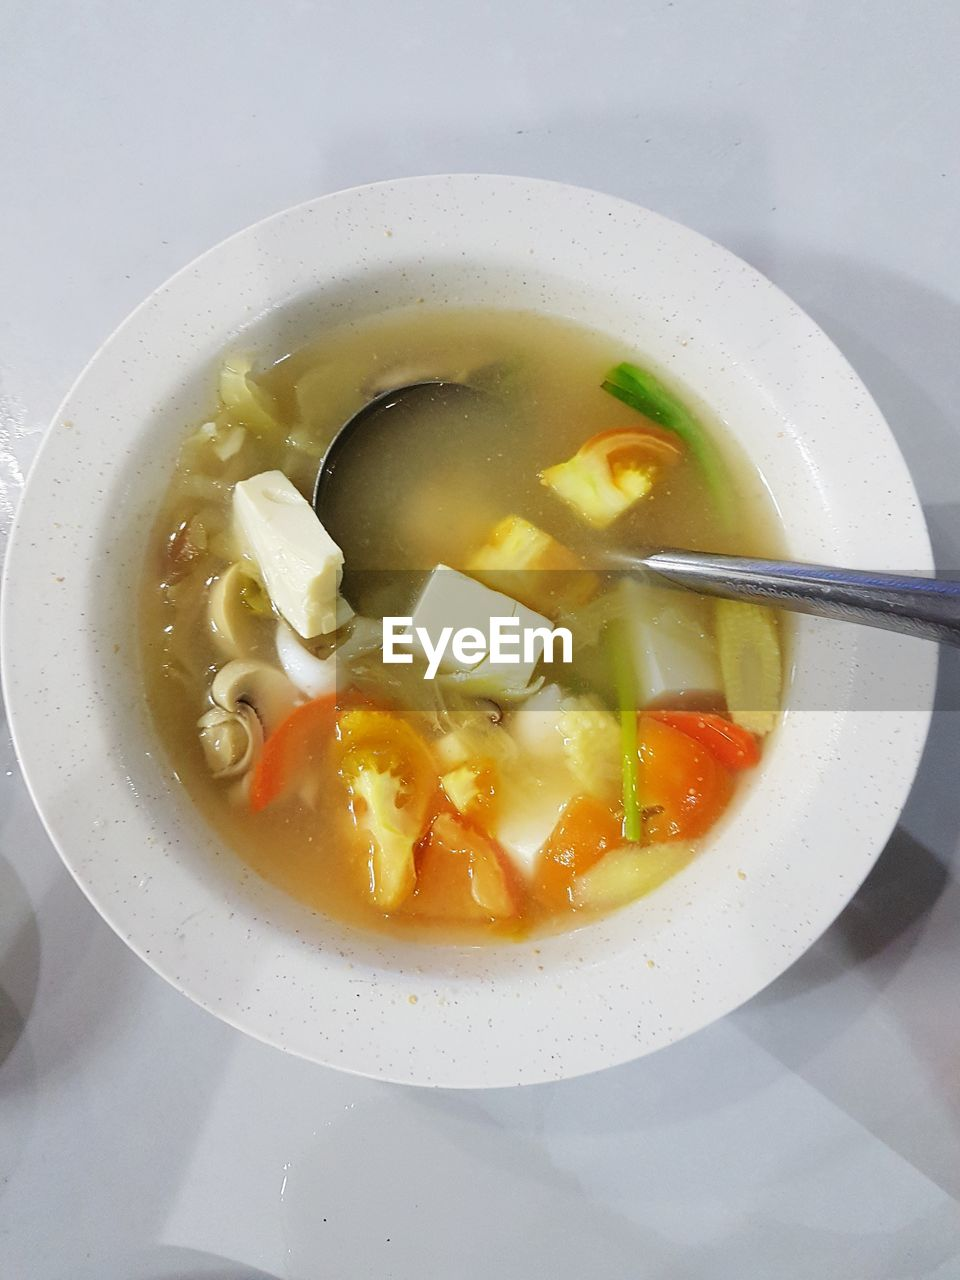 food, ready-to-eat, healthy eating, food and drink, soup, wellbeing, freshness, bowl, indoors, vegetable, spoon, close-up, no people, serving size, table, still life, eating utensil, directly above, high angle view, vegetable soup, soup bowl, garnish, vegetarian food, temptation